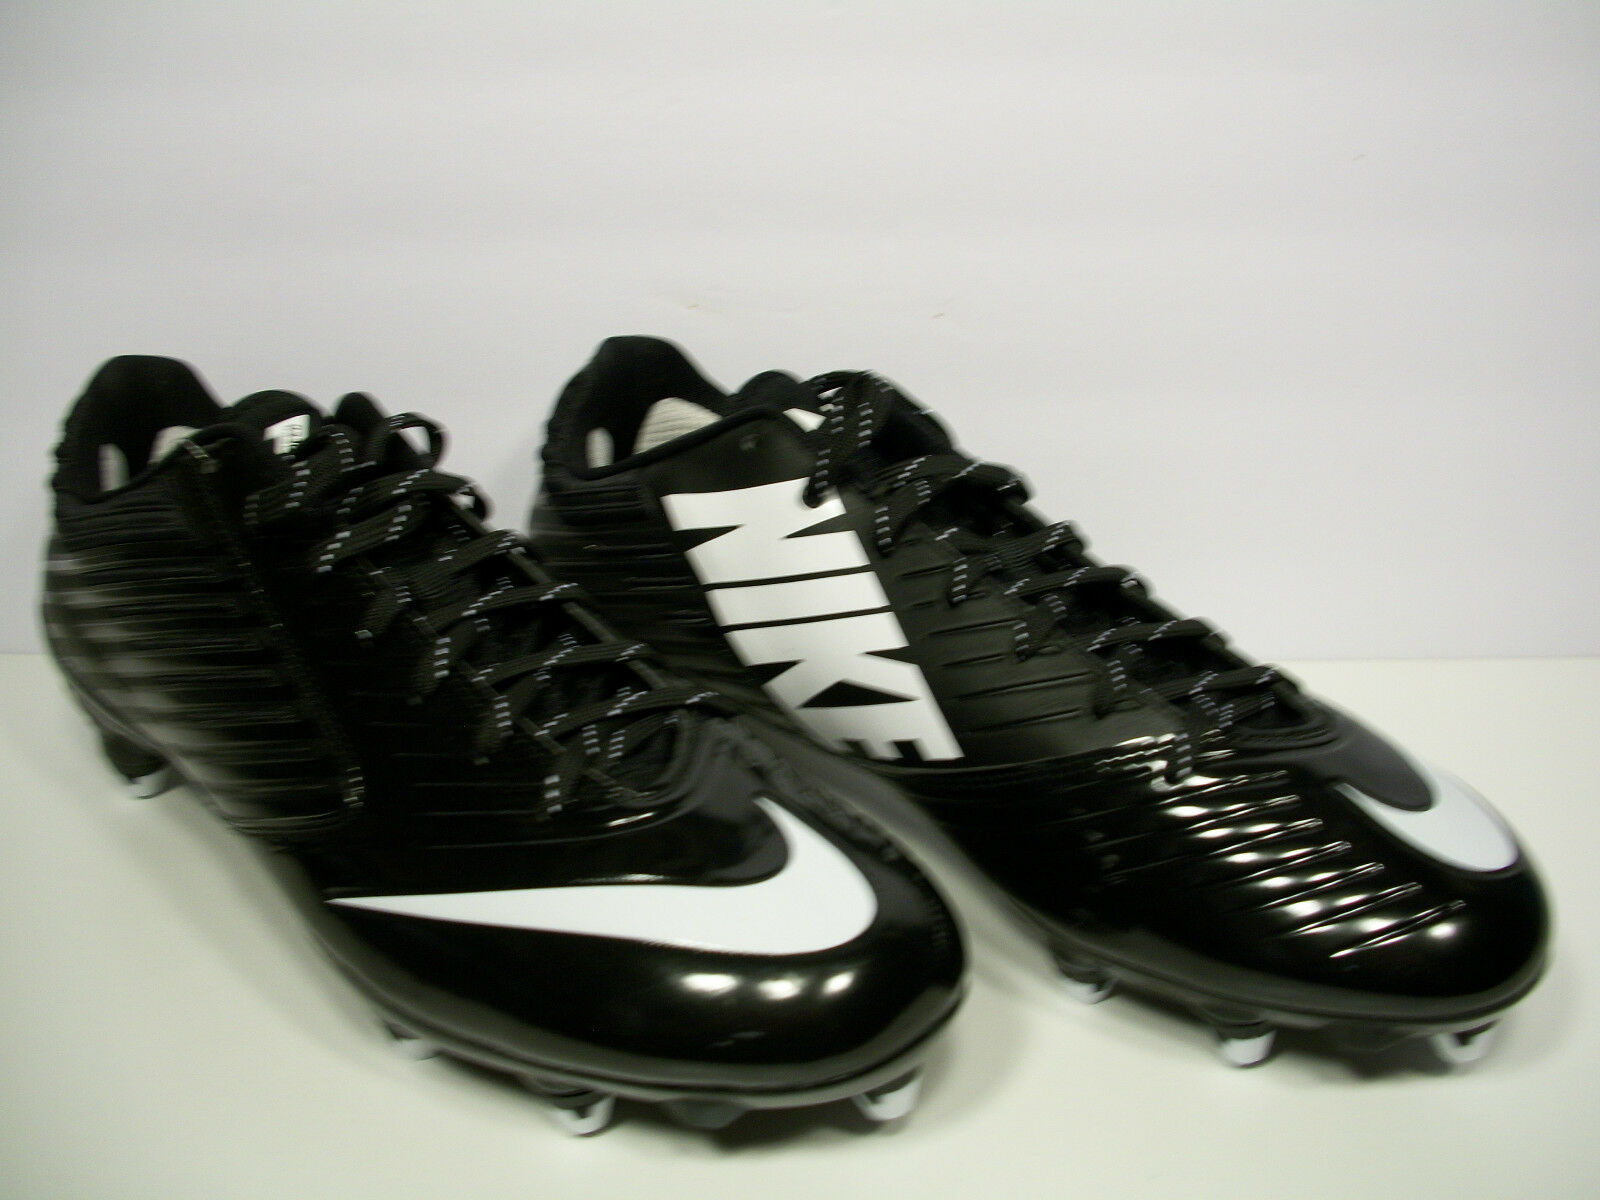 NIKE Vapor Speed Low Football Cleats 643160-010 Black/White Size 12